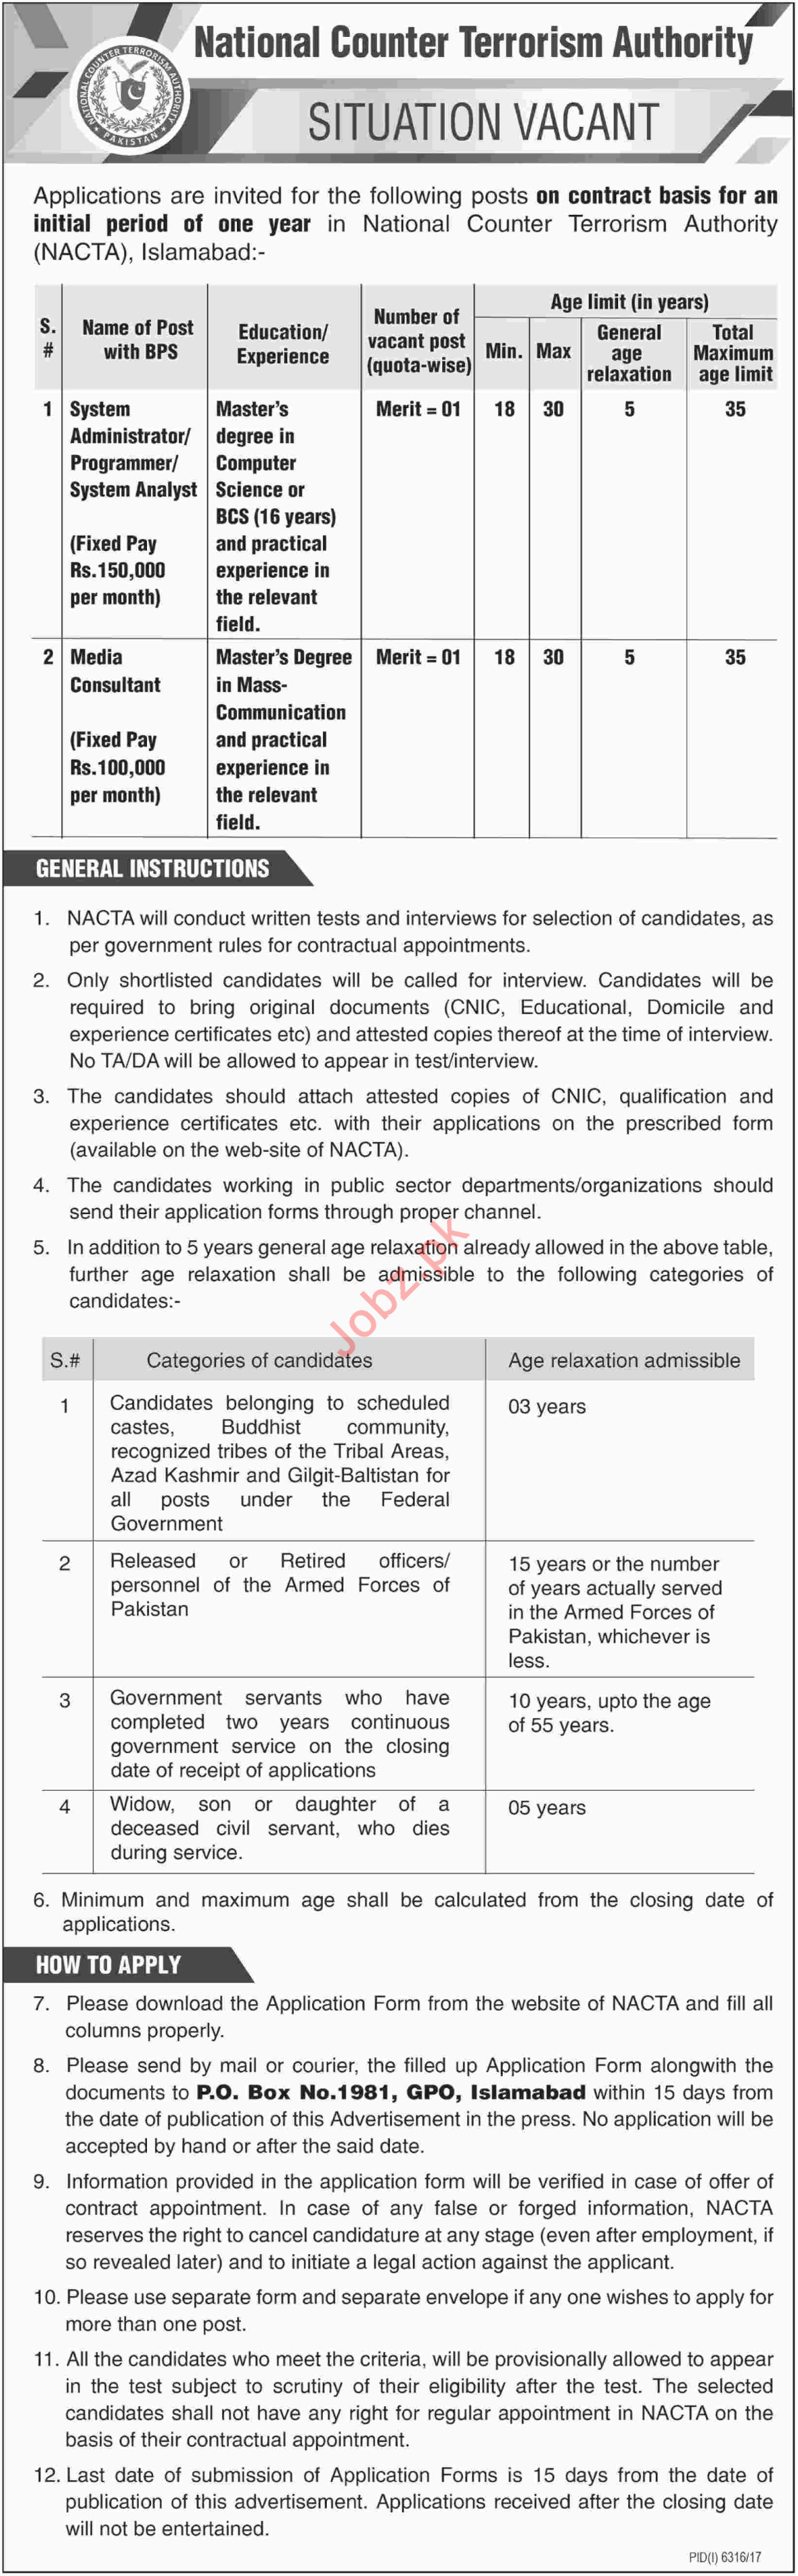 National Counter Terrorism Authority NACTA Islamabad Jobs